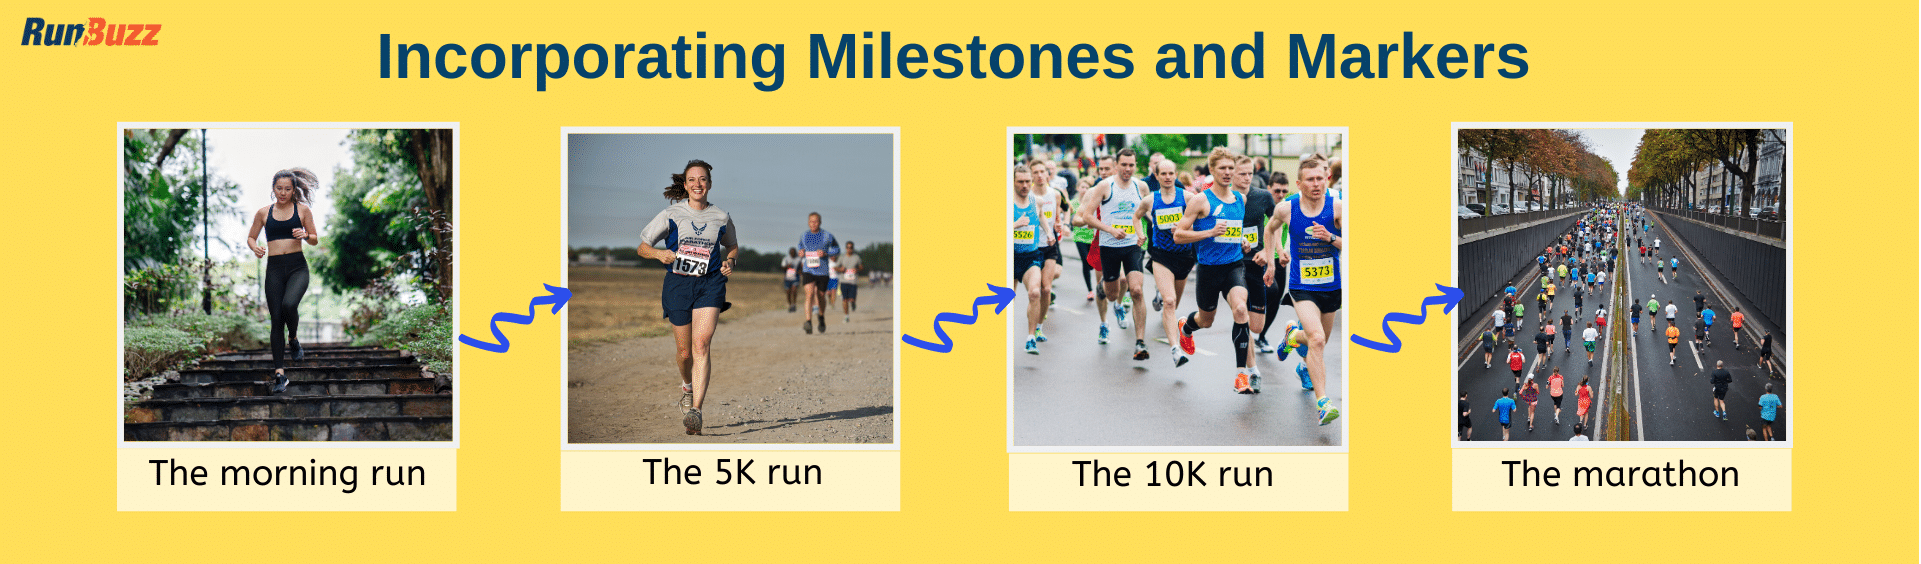 Incorporating-Milestones-and-Markers